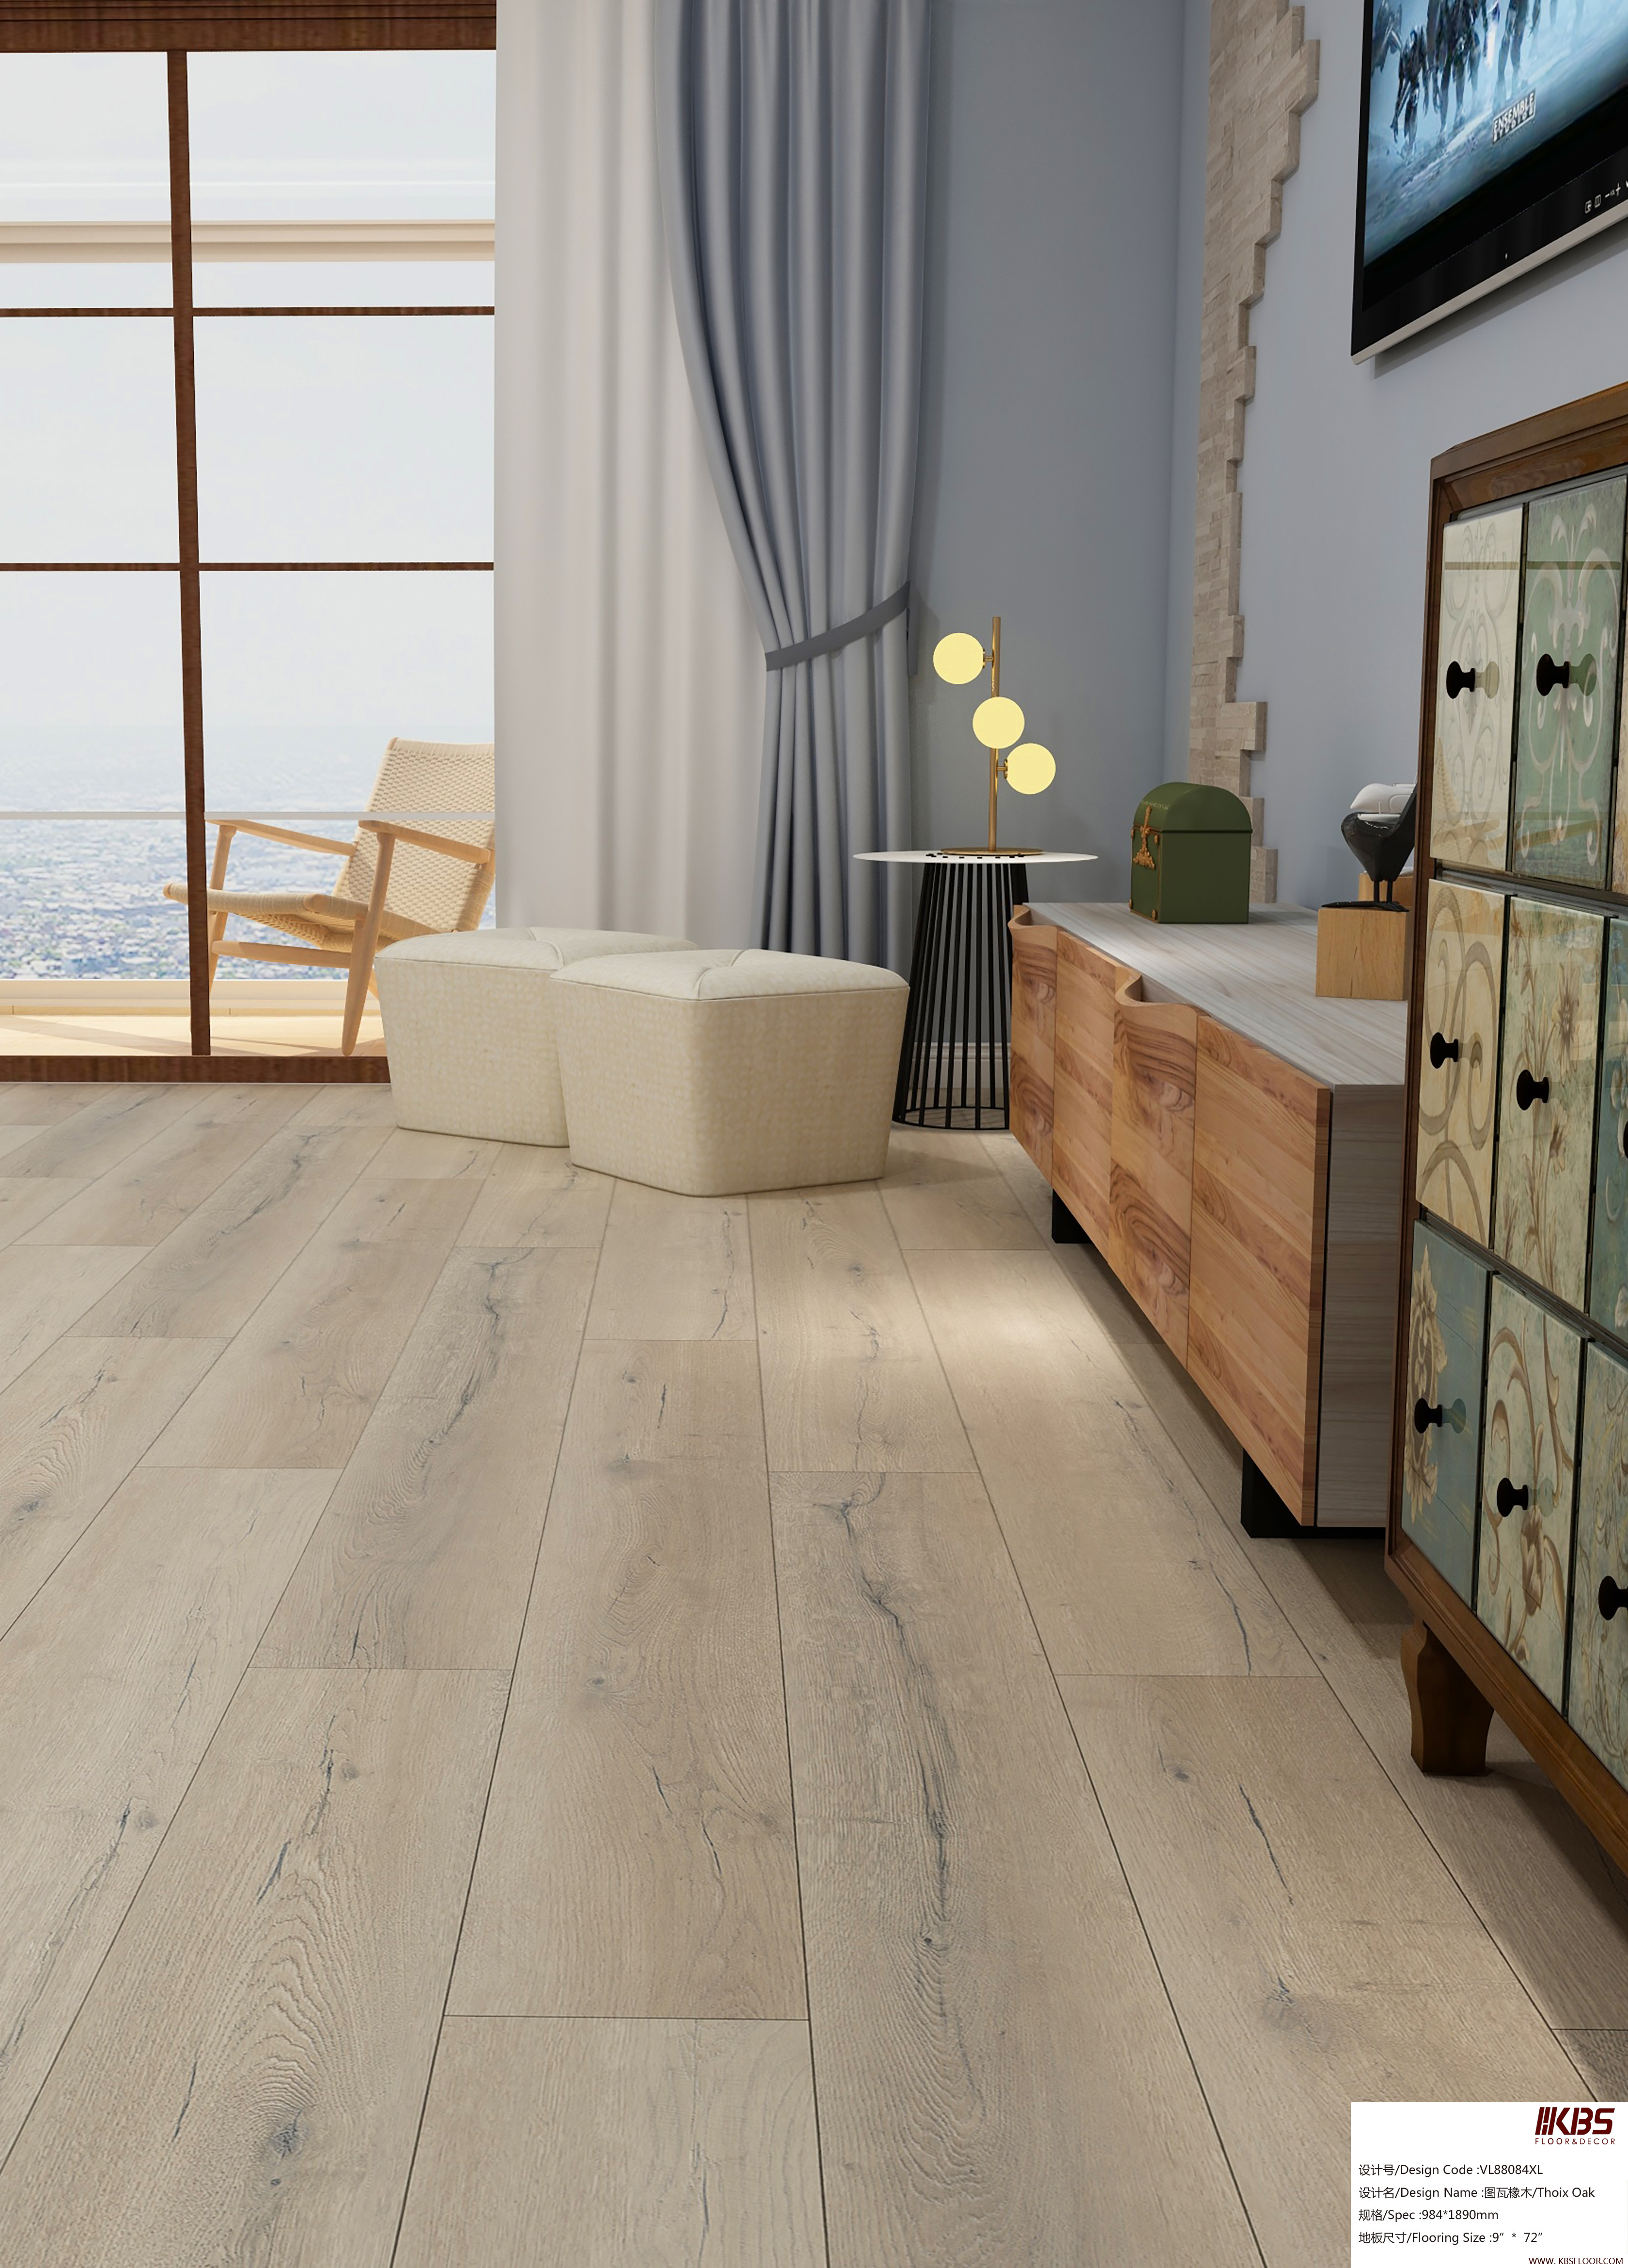 LVT Flooring VL88084XL